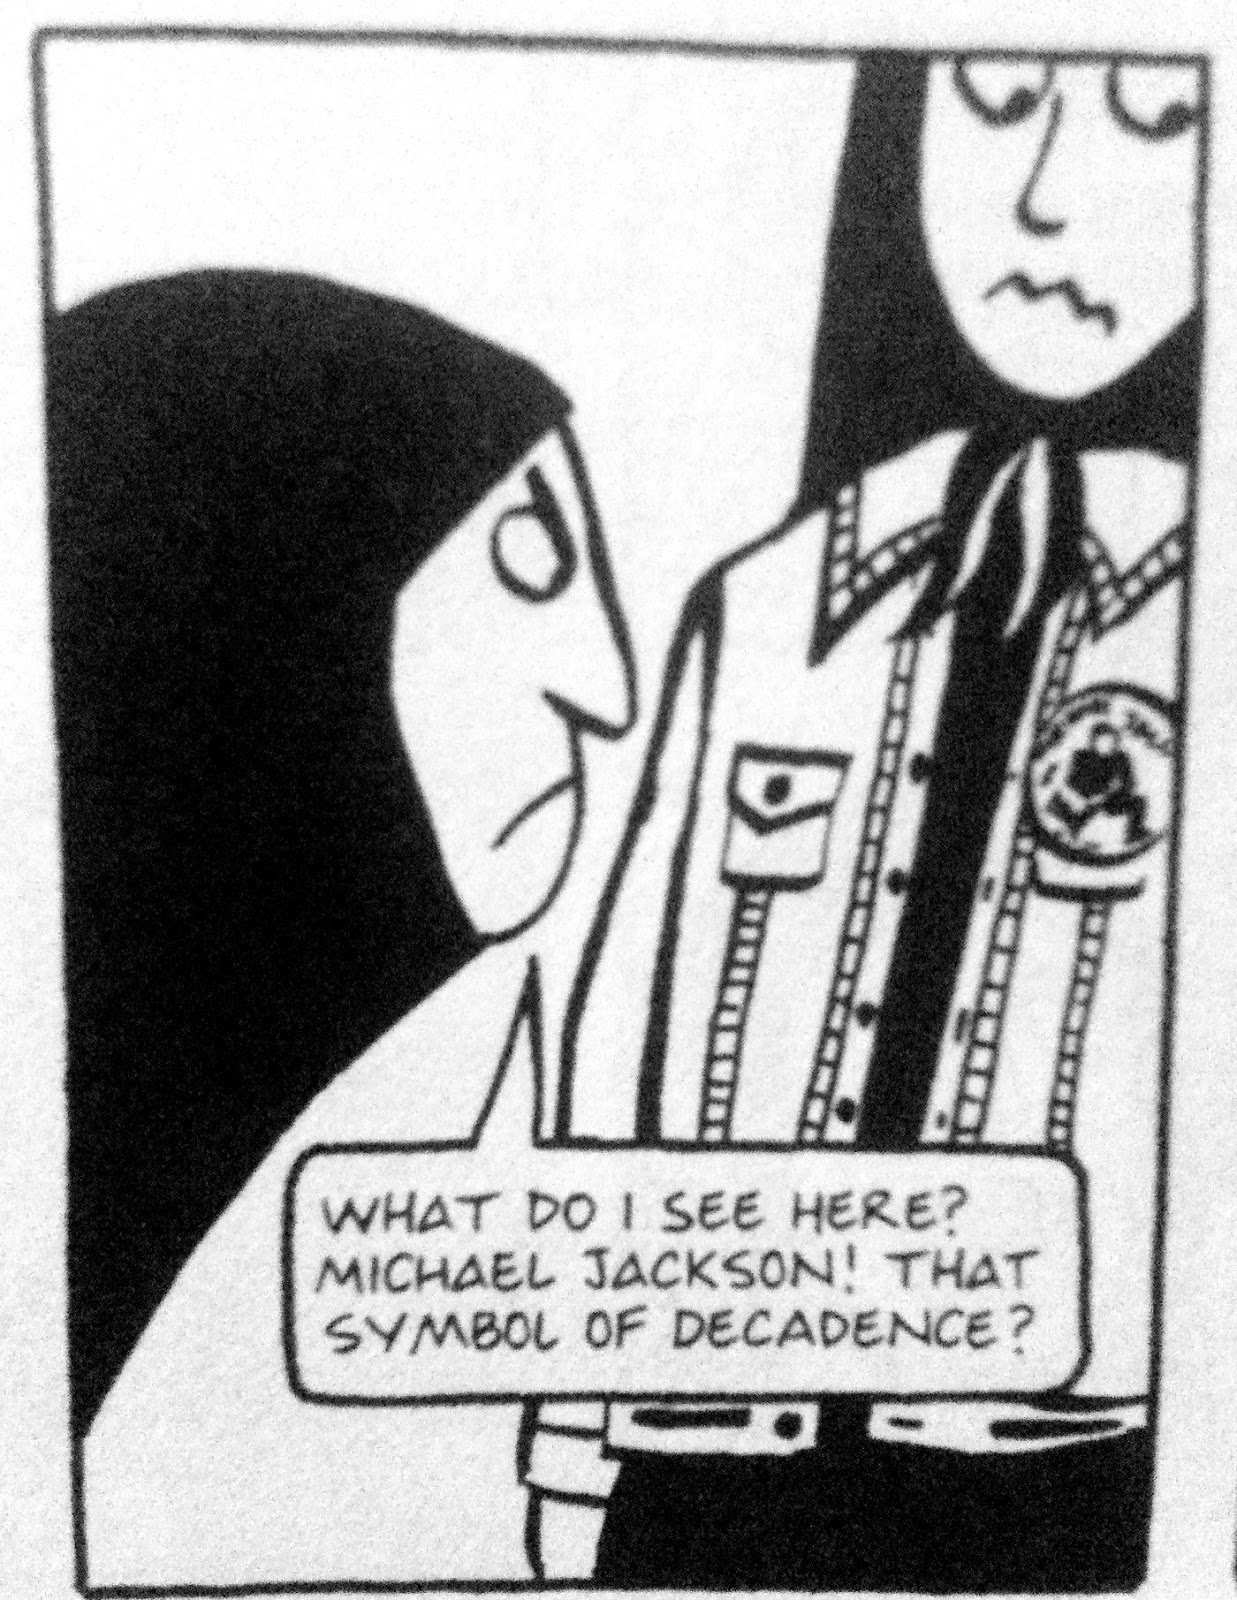 an issue of gender identity in marjane satrapis the complete persepolis During the discourse of whether a person's gender identity is a persepolis 2, written by marjane satrapi –a documents similar to revisions - nurture wins.